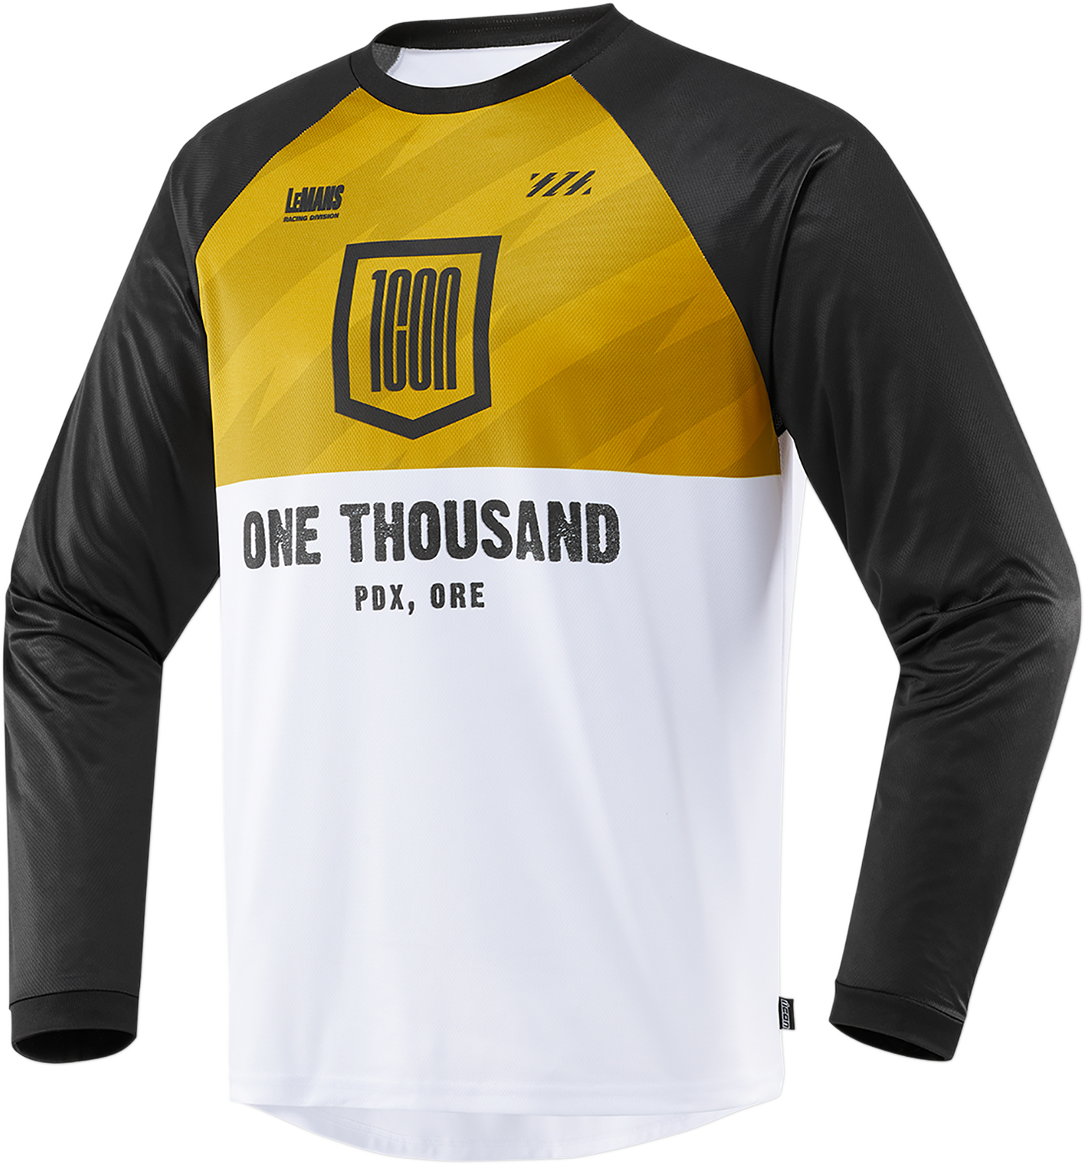 Icon 1000 Status Mens Gold Long Sleeve Offroad Riding Dirtbike Racing Jersey